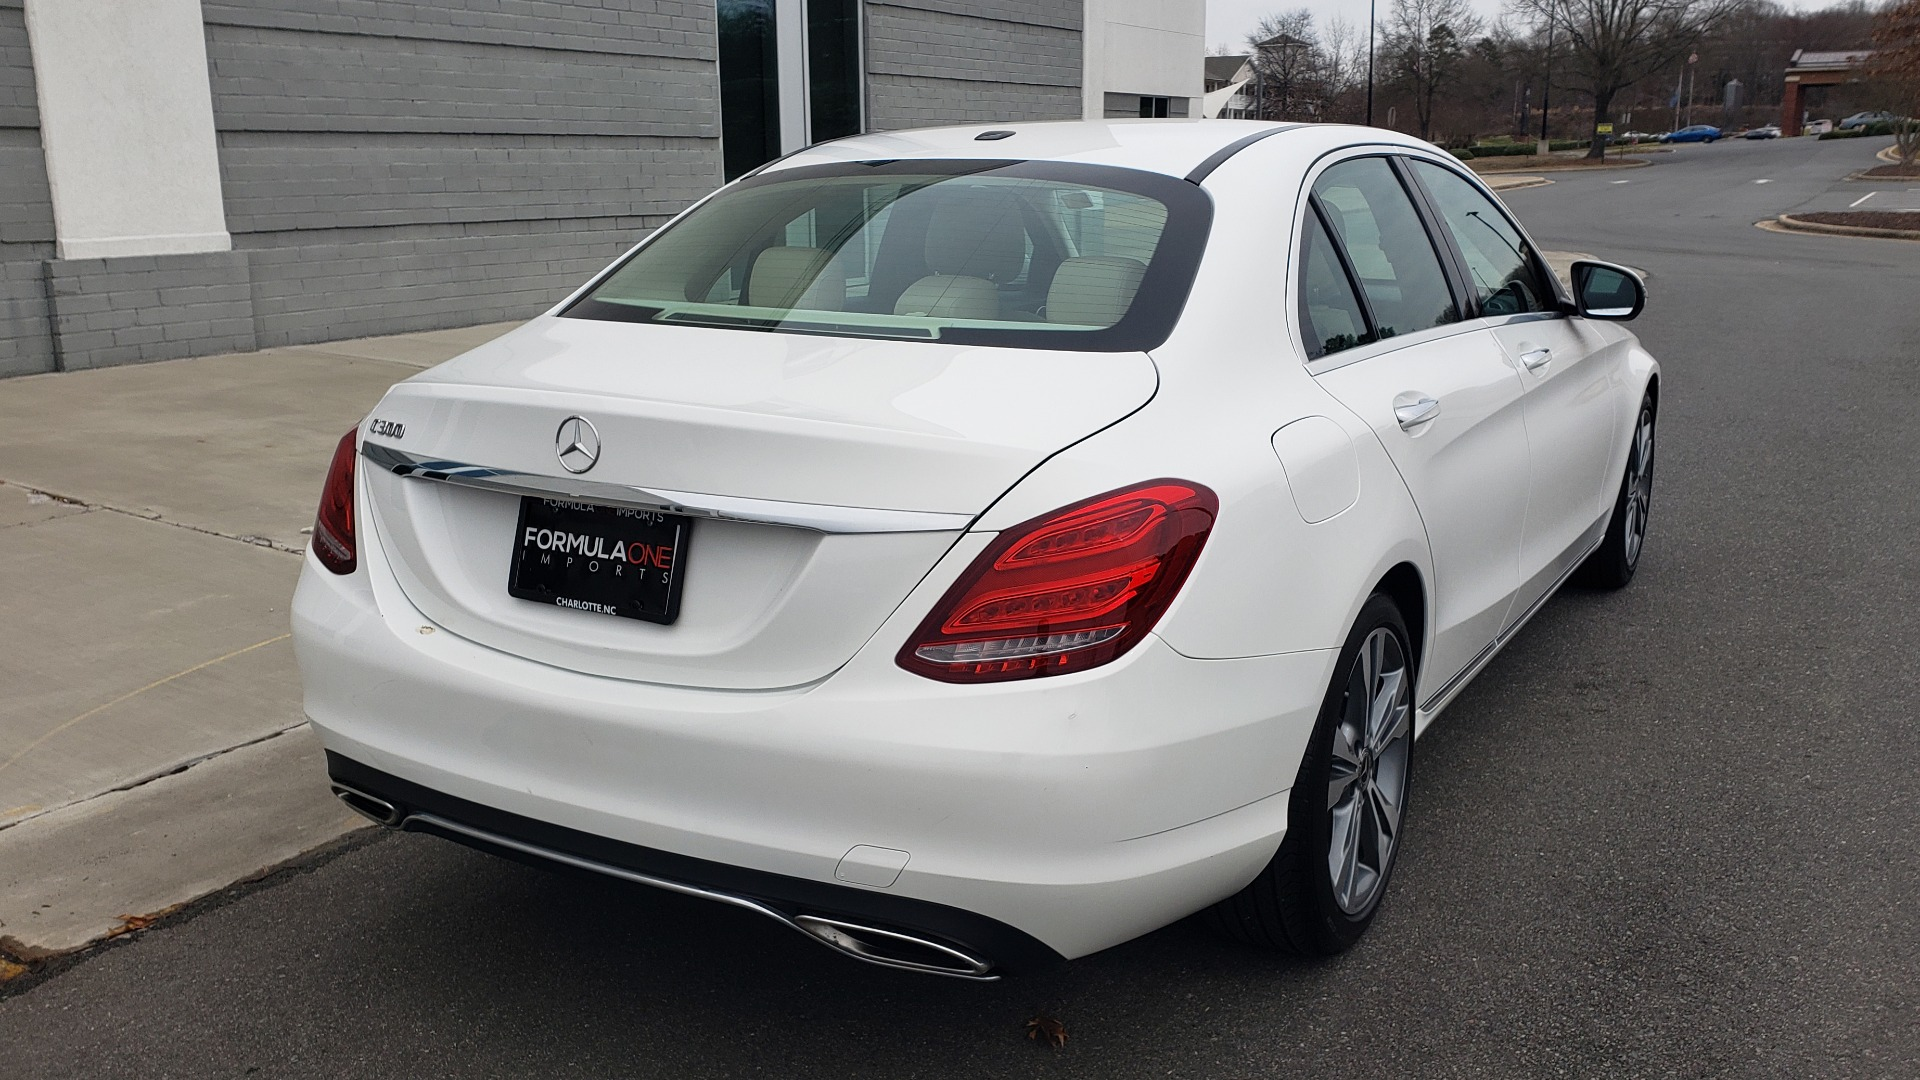 Used 2018 Mercedes-Benz C-CLASS C 300 PREMIUM / NAV / HTD STS / APPLY CARPLAY / REARVIEW for sale $26,695 at Formula Imports in Charlotte NC 28227 5